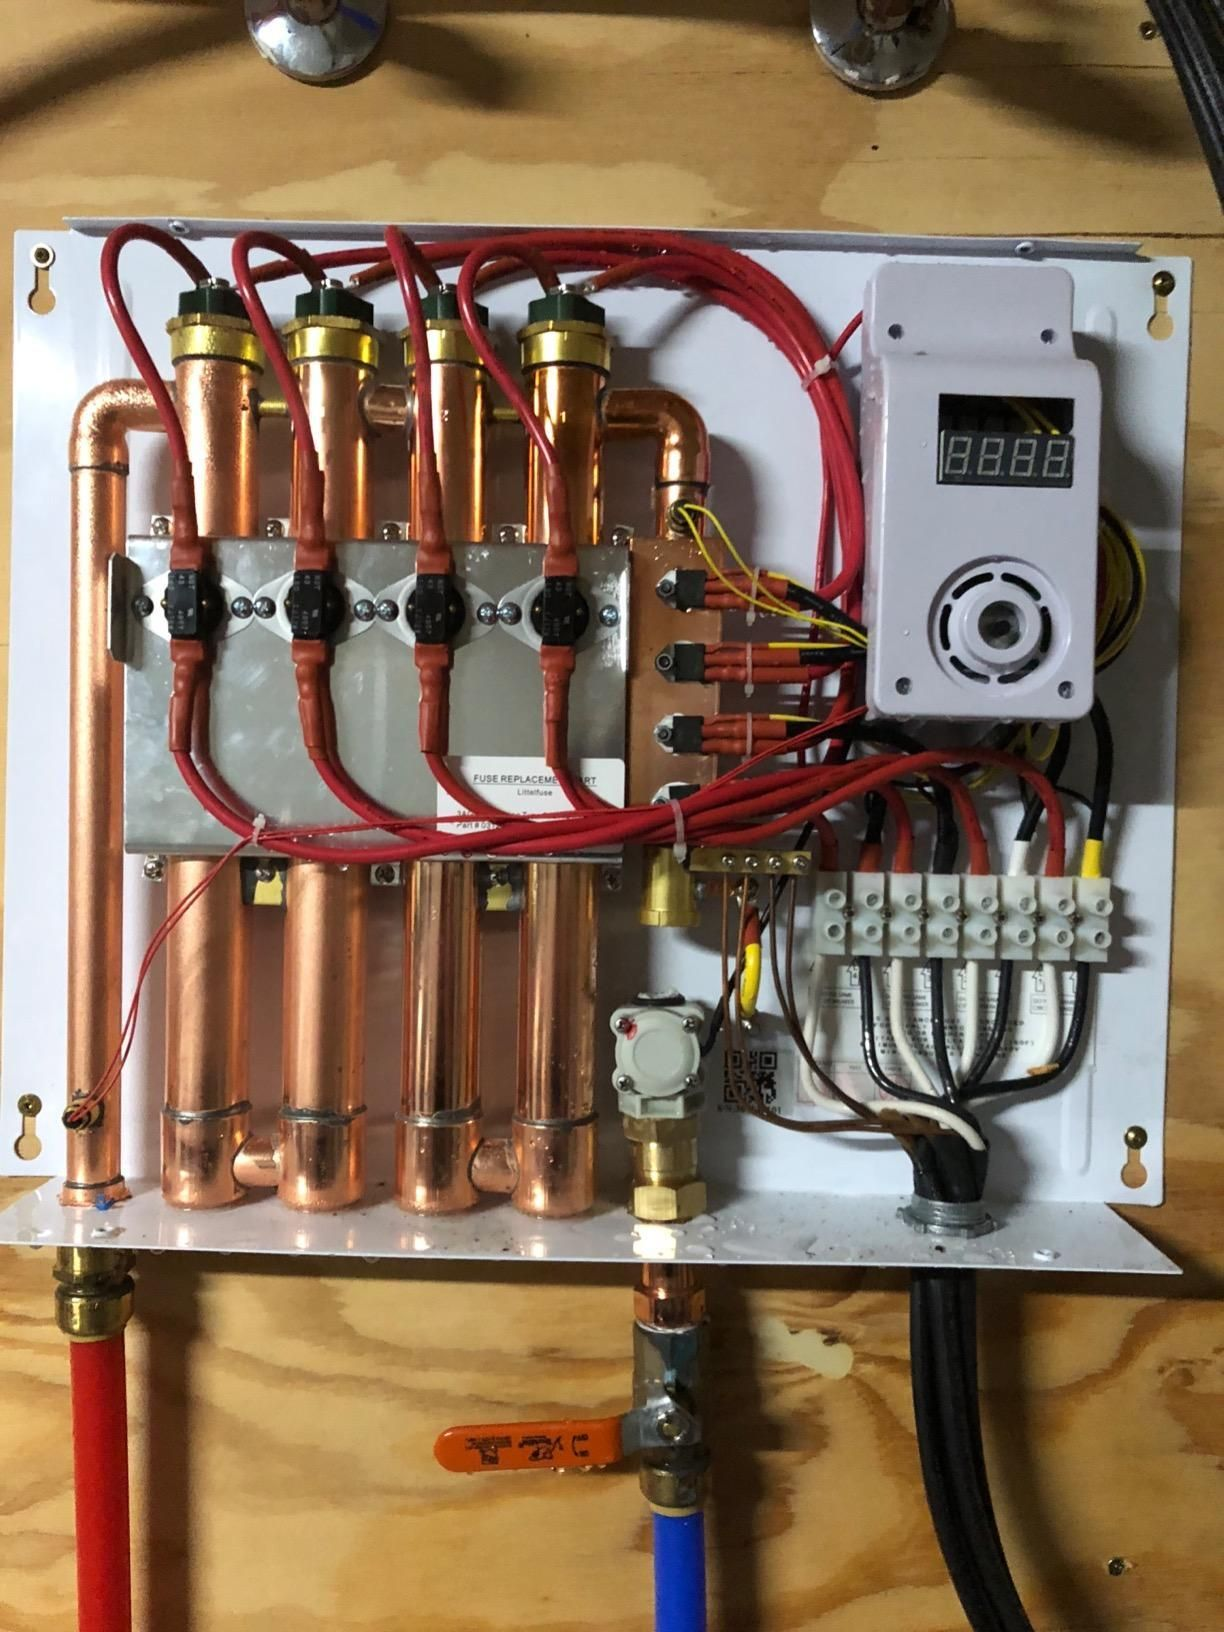 Compact Design Of The Water Heating System Saves Up To 12 Cubic Metre Of Storage Space When Compared Water Heating Systems Tankless Water Heater Water Heating